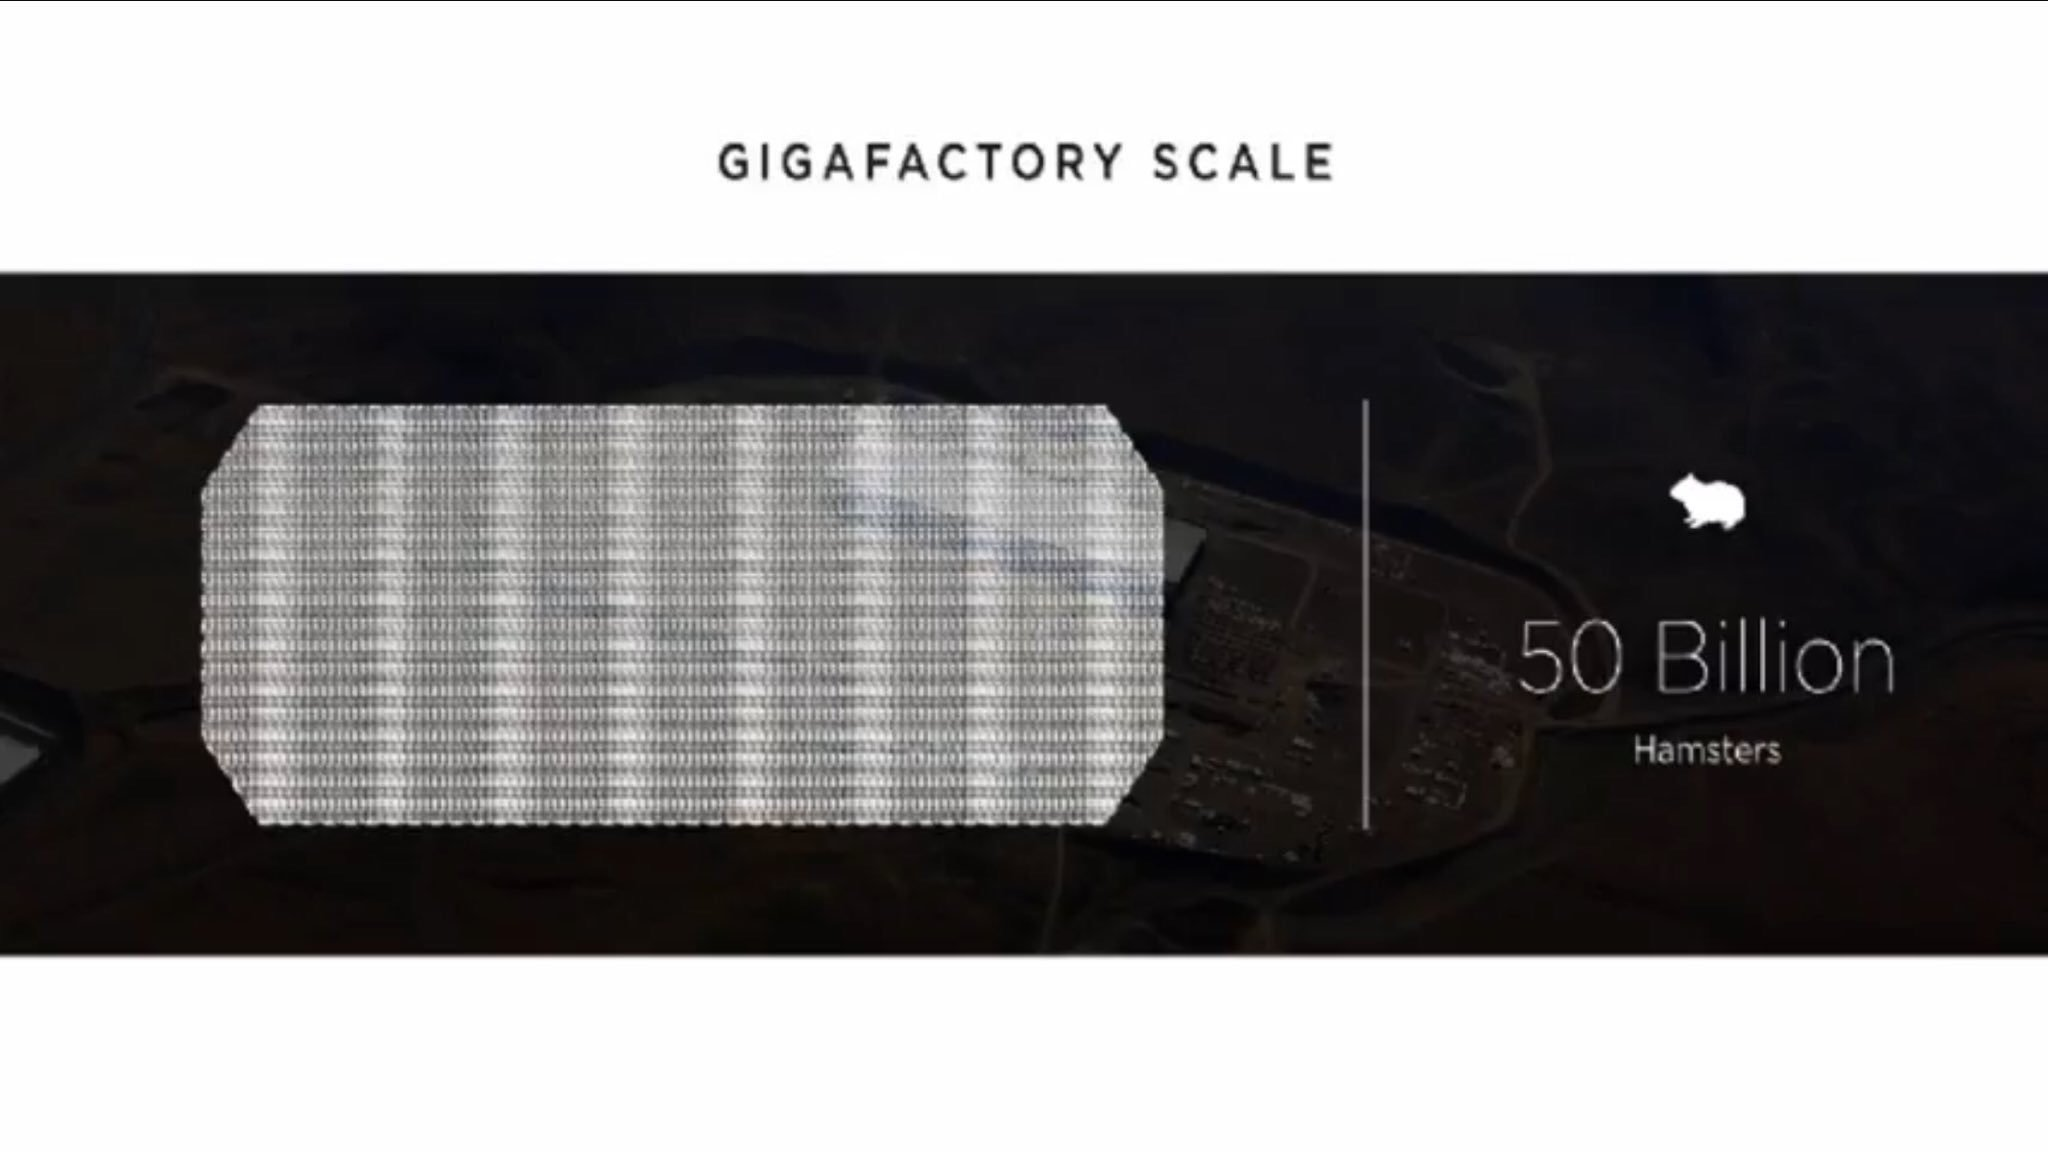 Tesla Gigafactory Scale in Hamsters